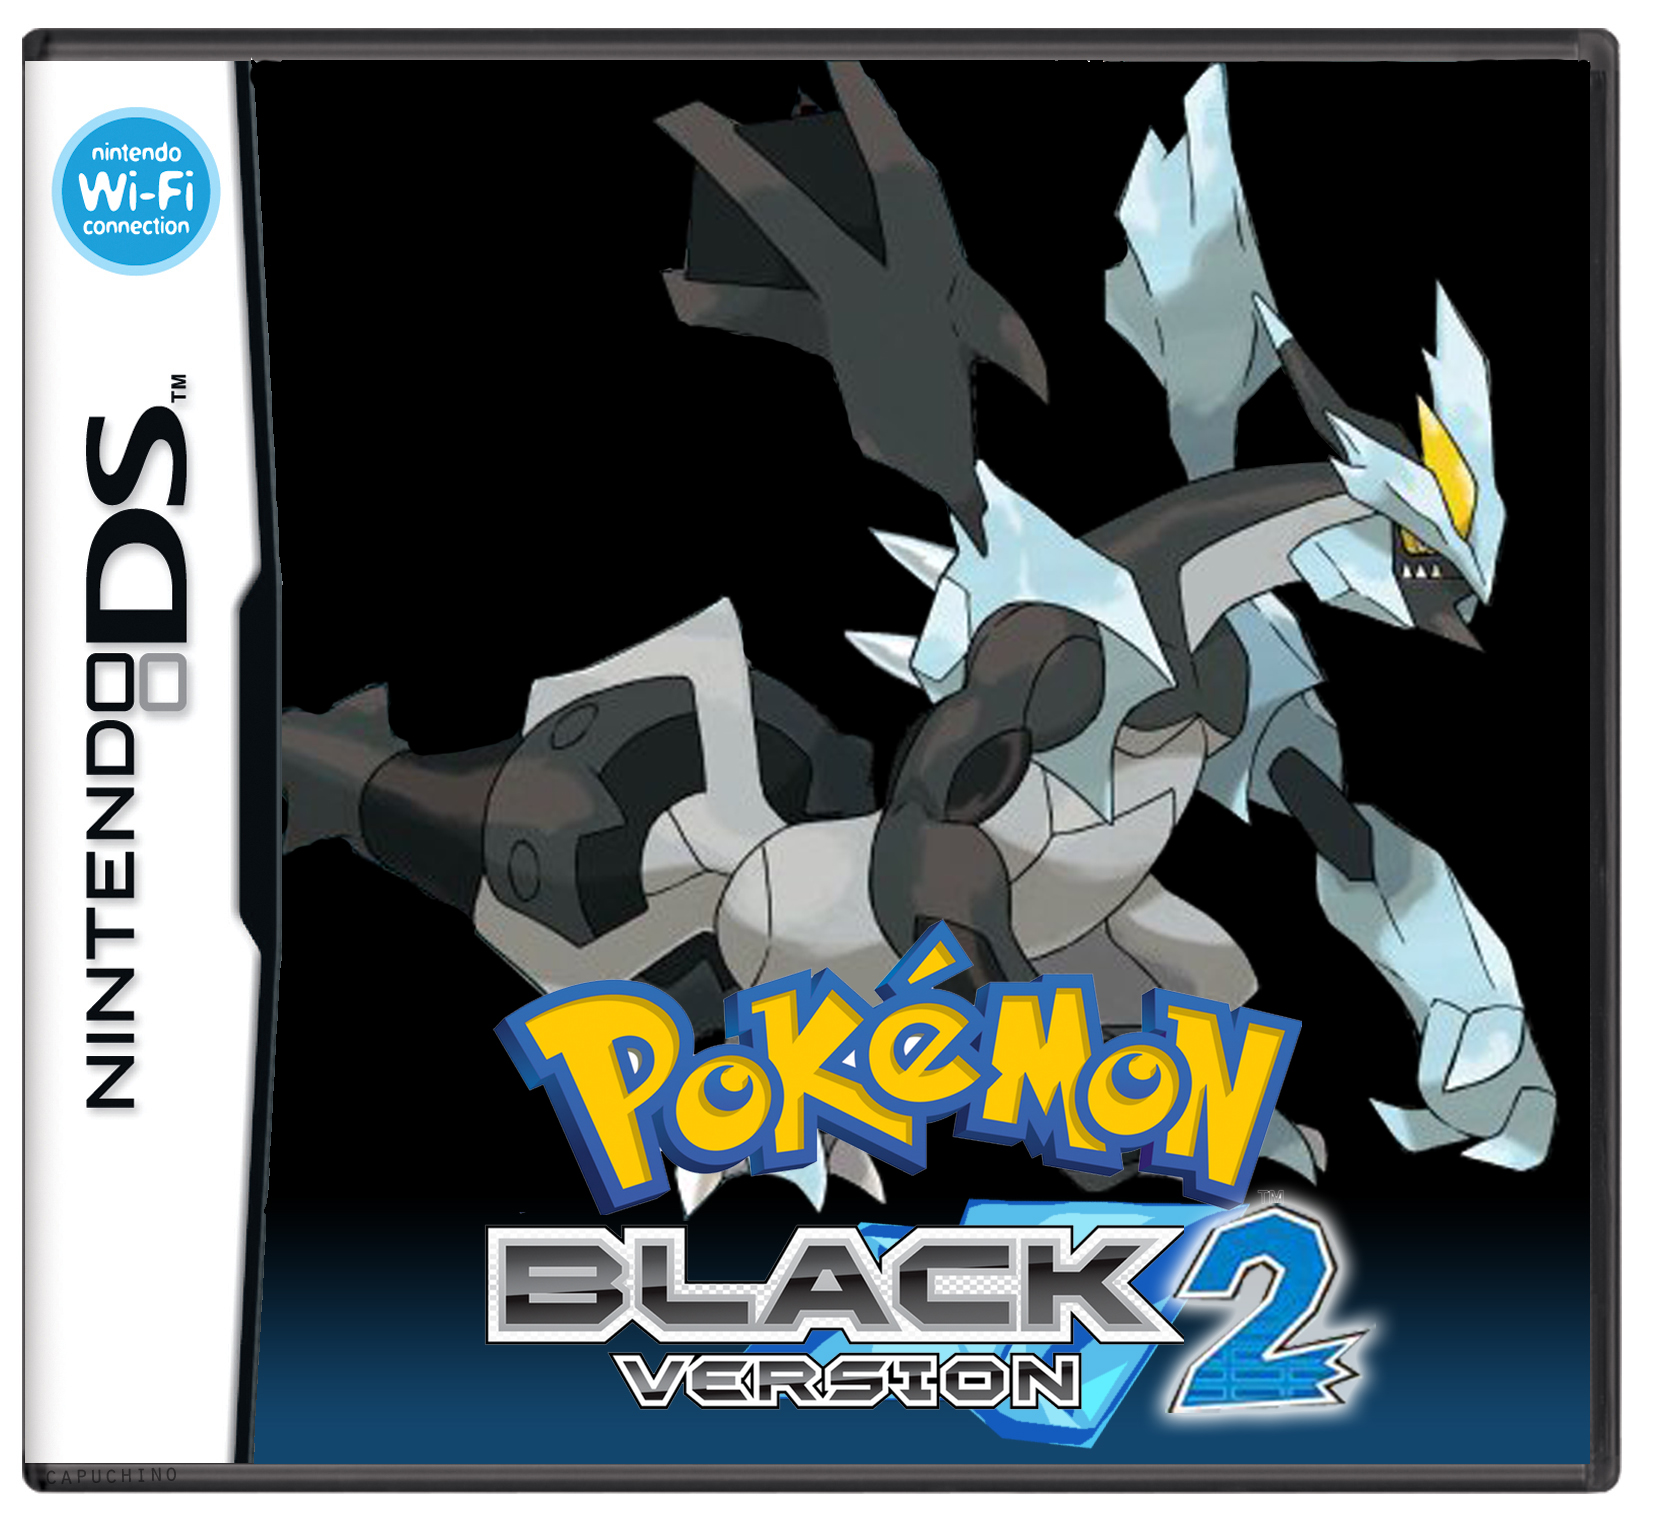 Pokemon Black & White 2 Will Use Global Link & Other ...